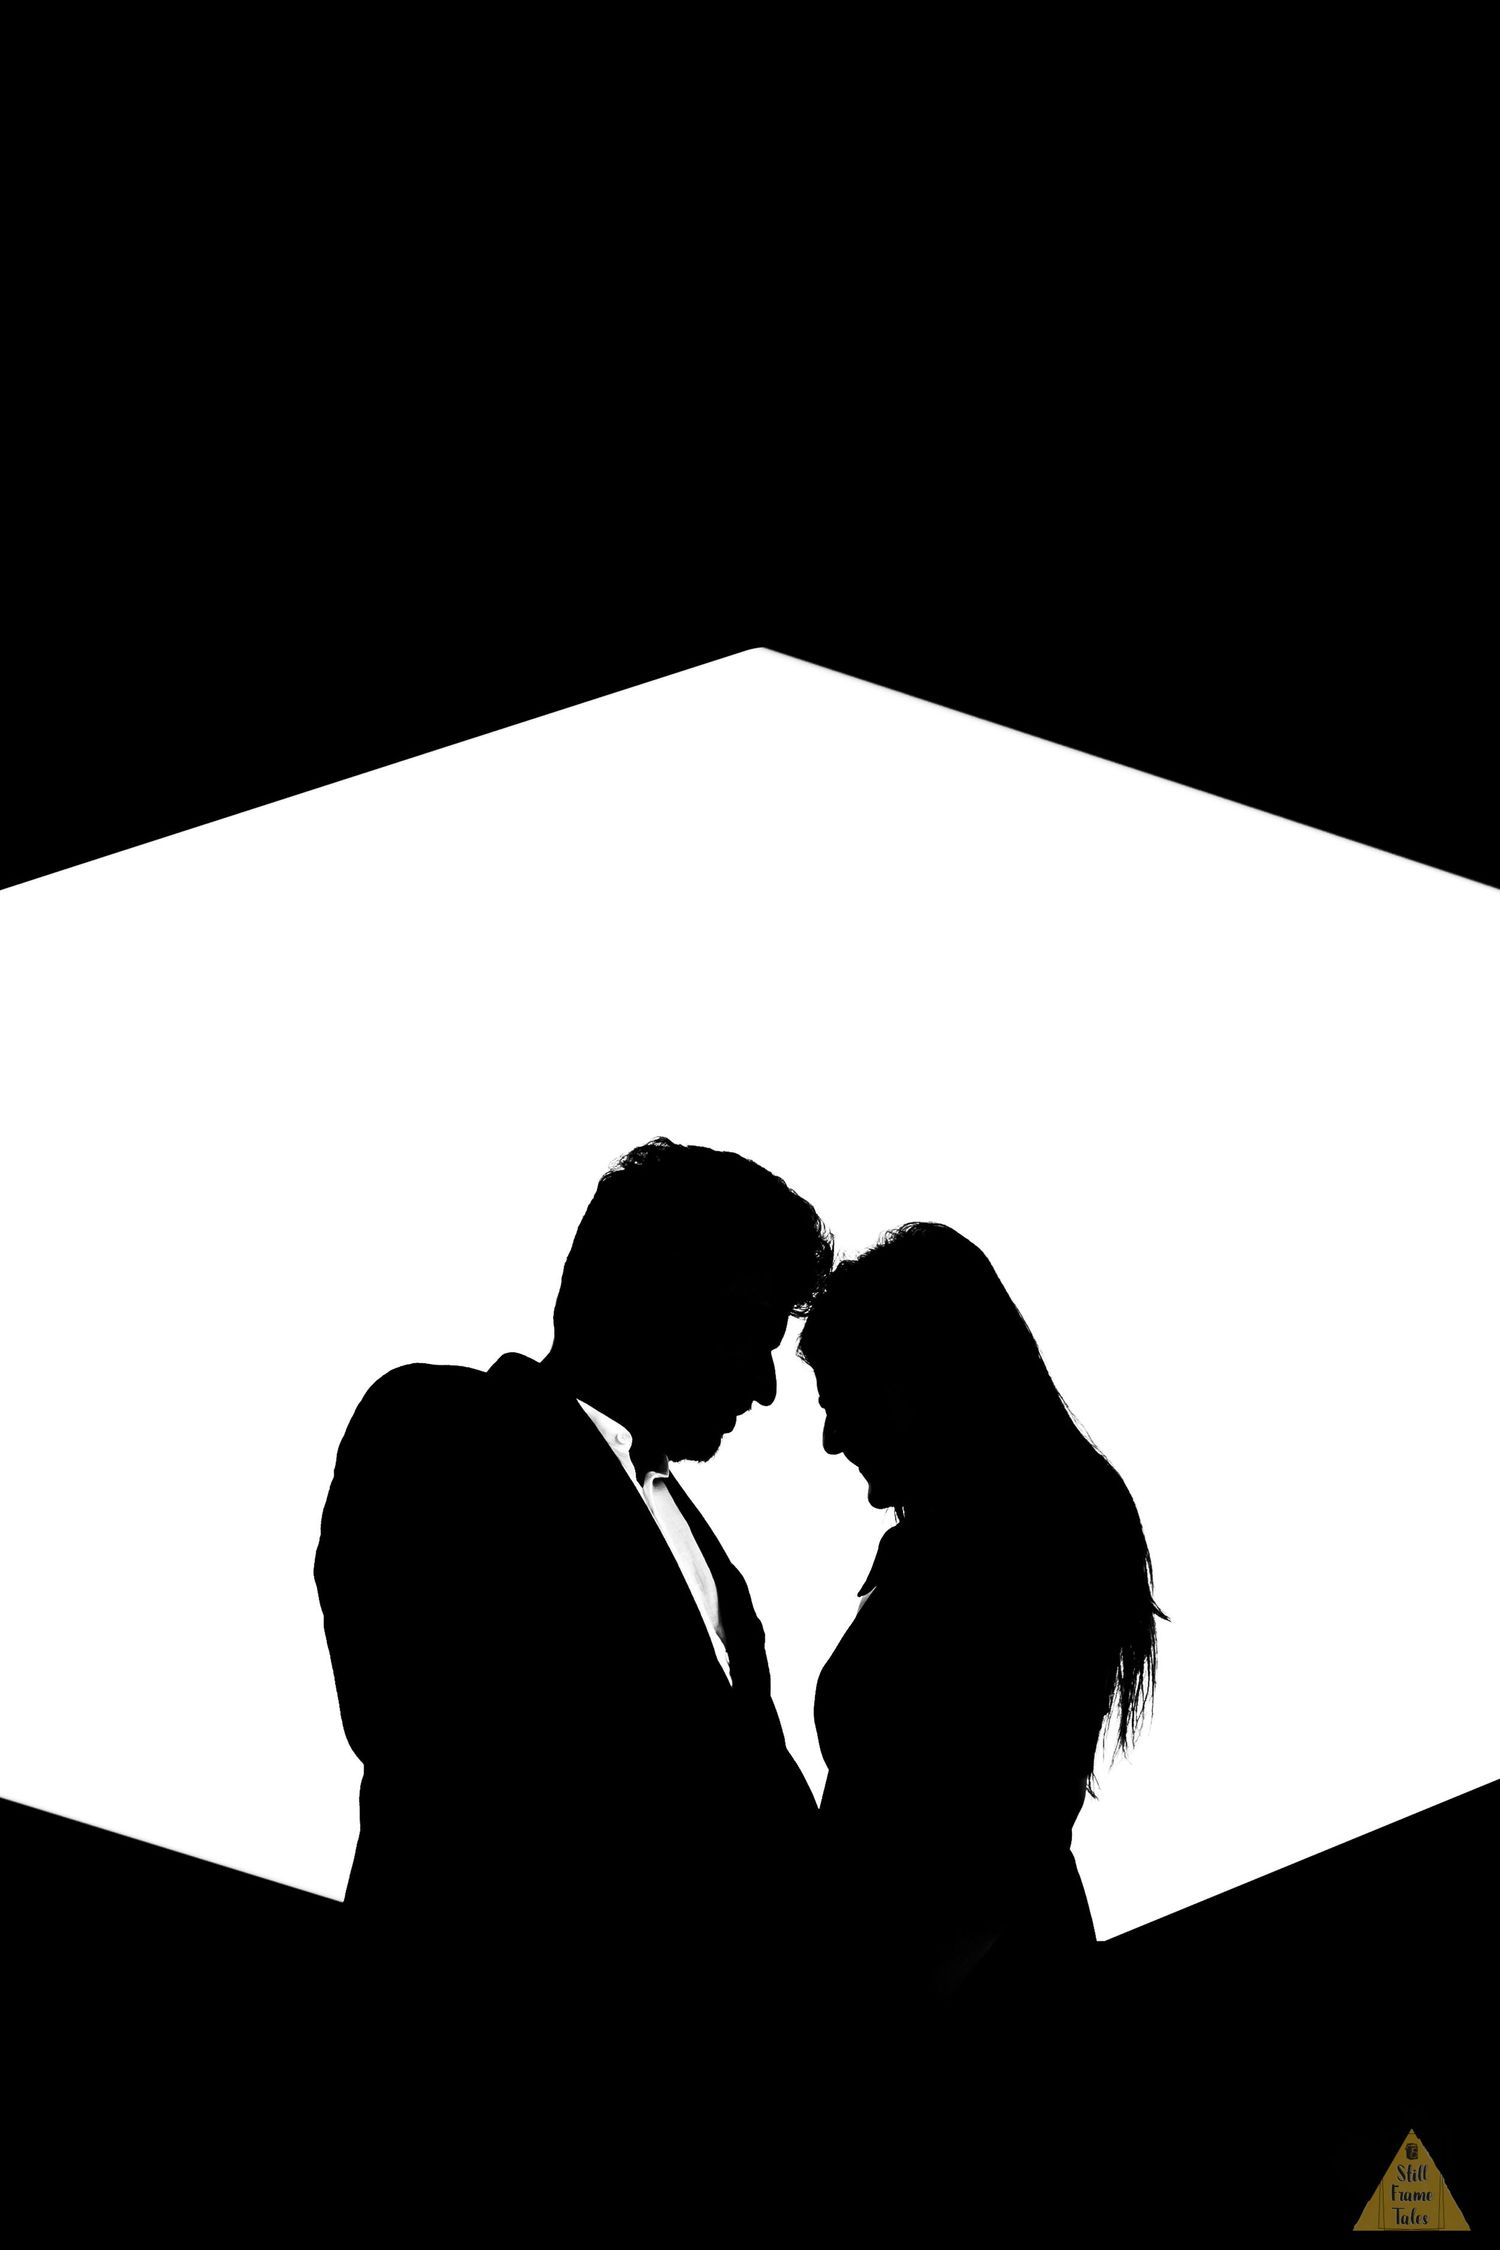 Couple silhouette in a artistic hexagonal shape background with black & white shade